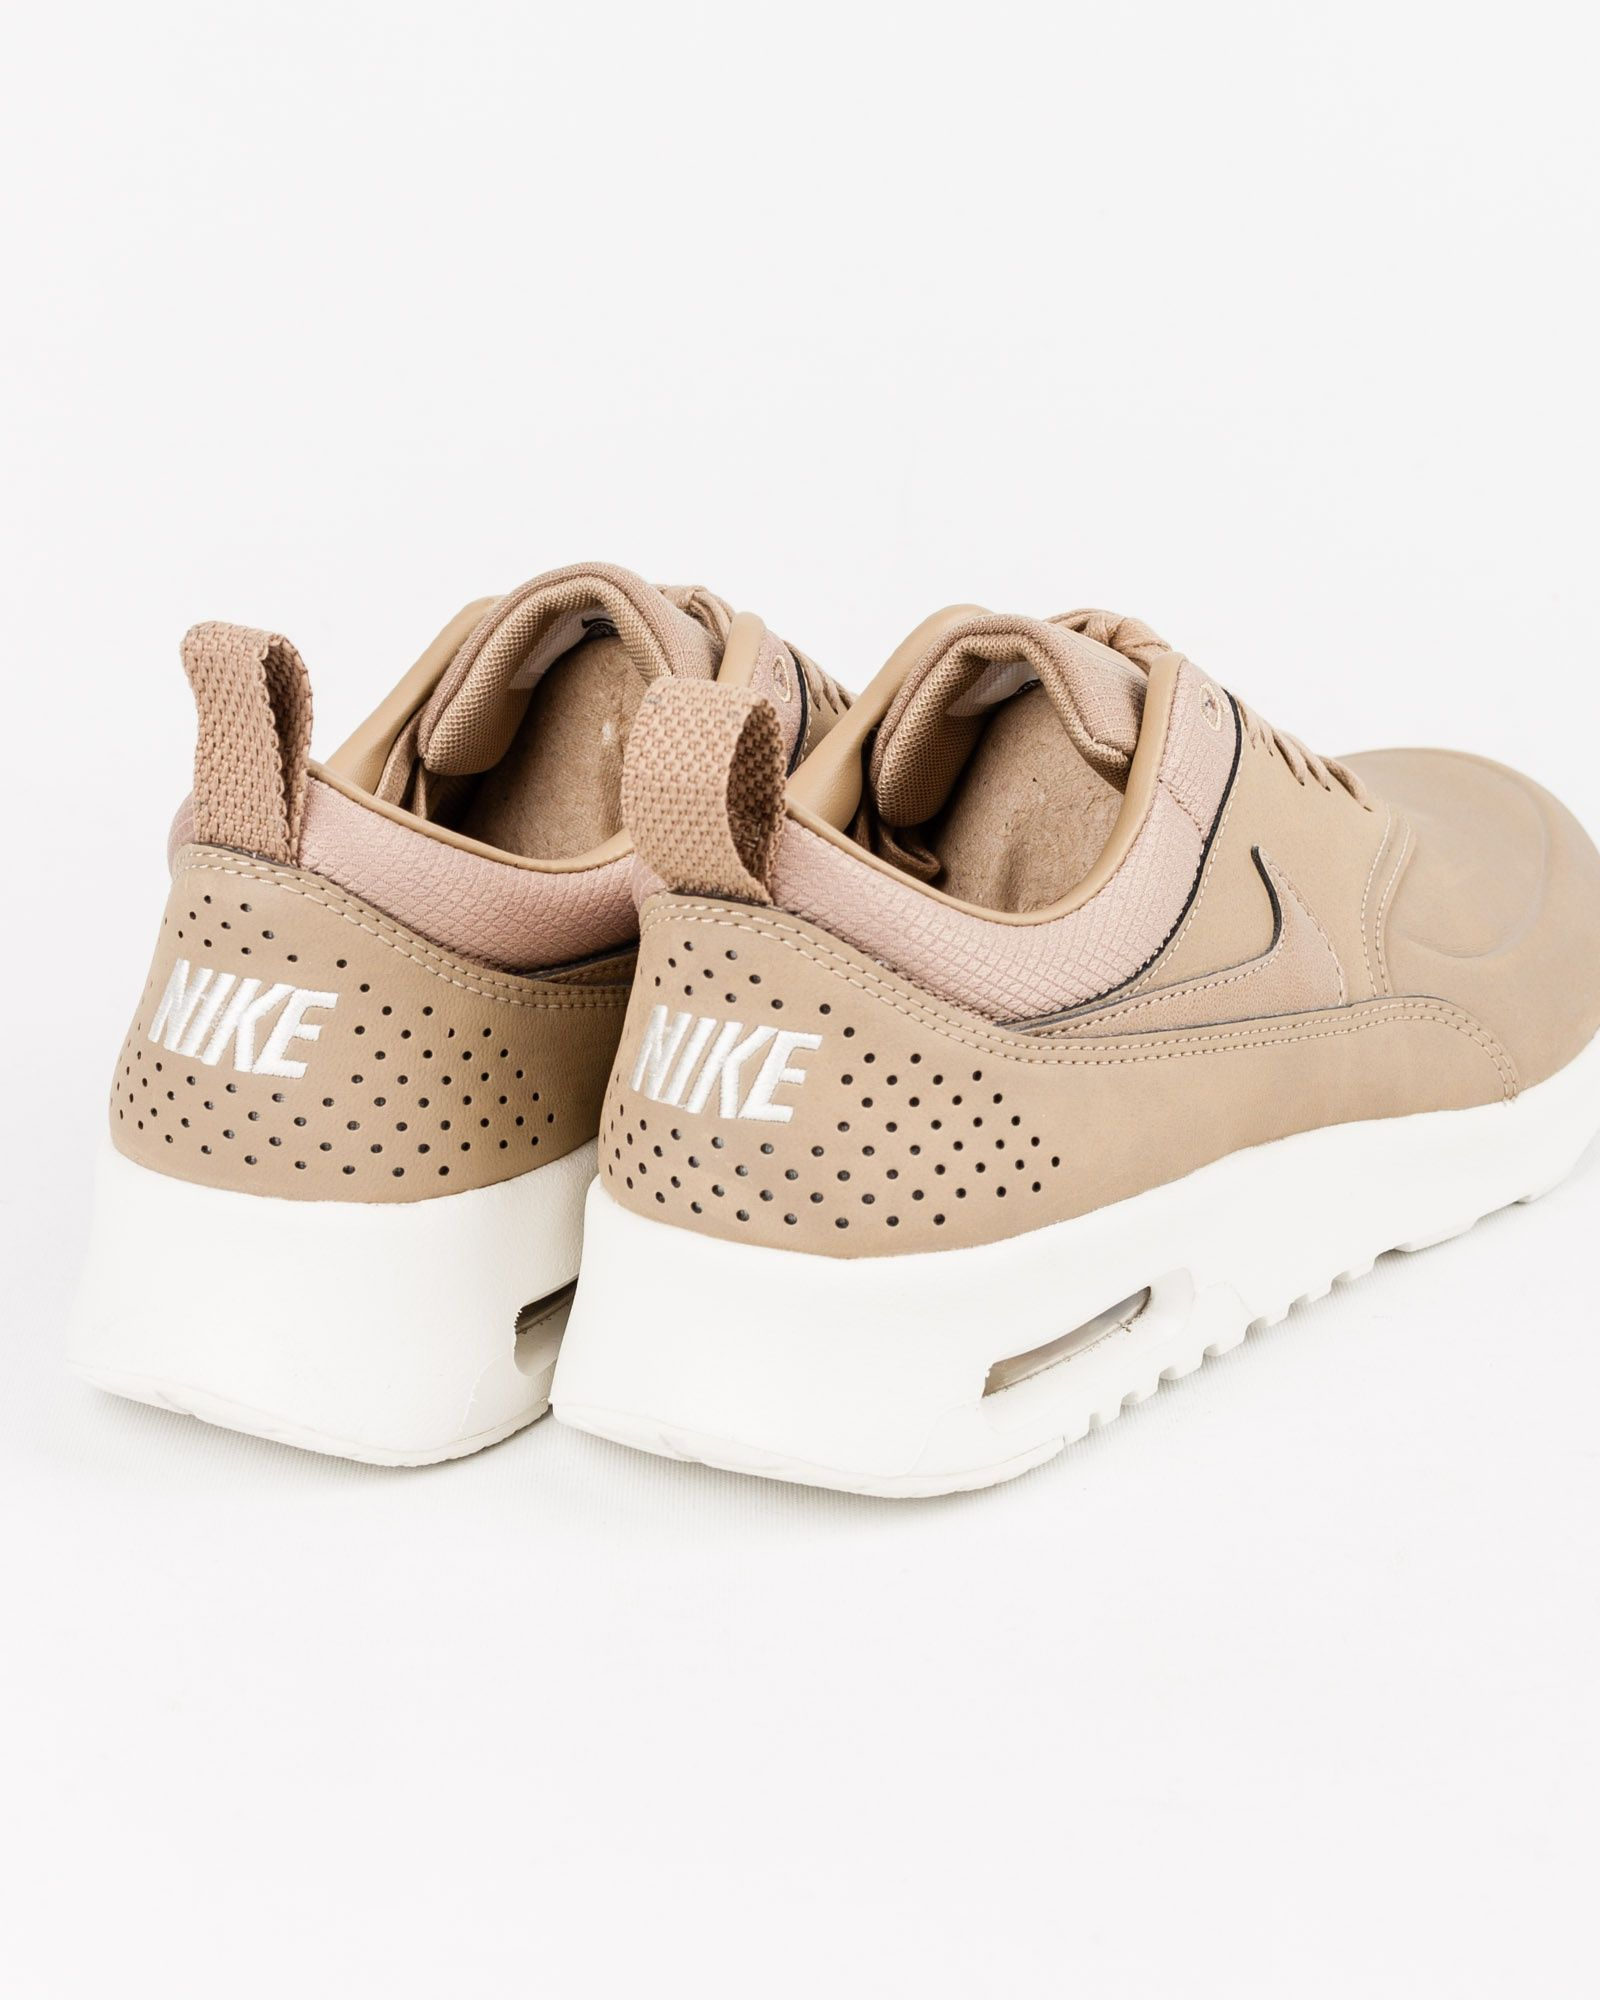 buy online 650fb ef703 Nike Air Max Thea Prm - Majestic